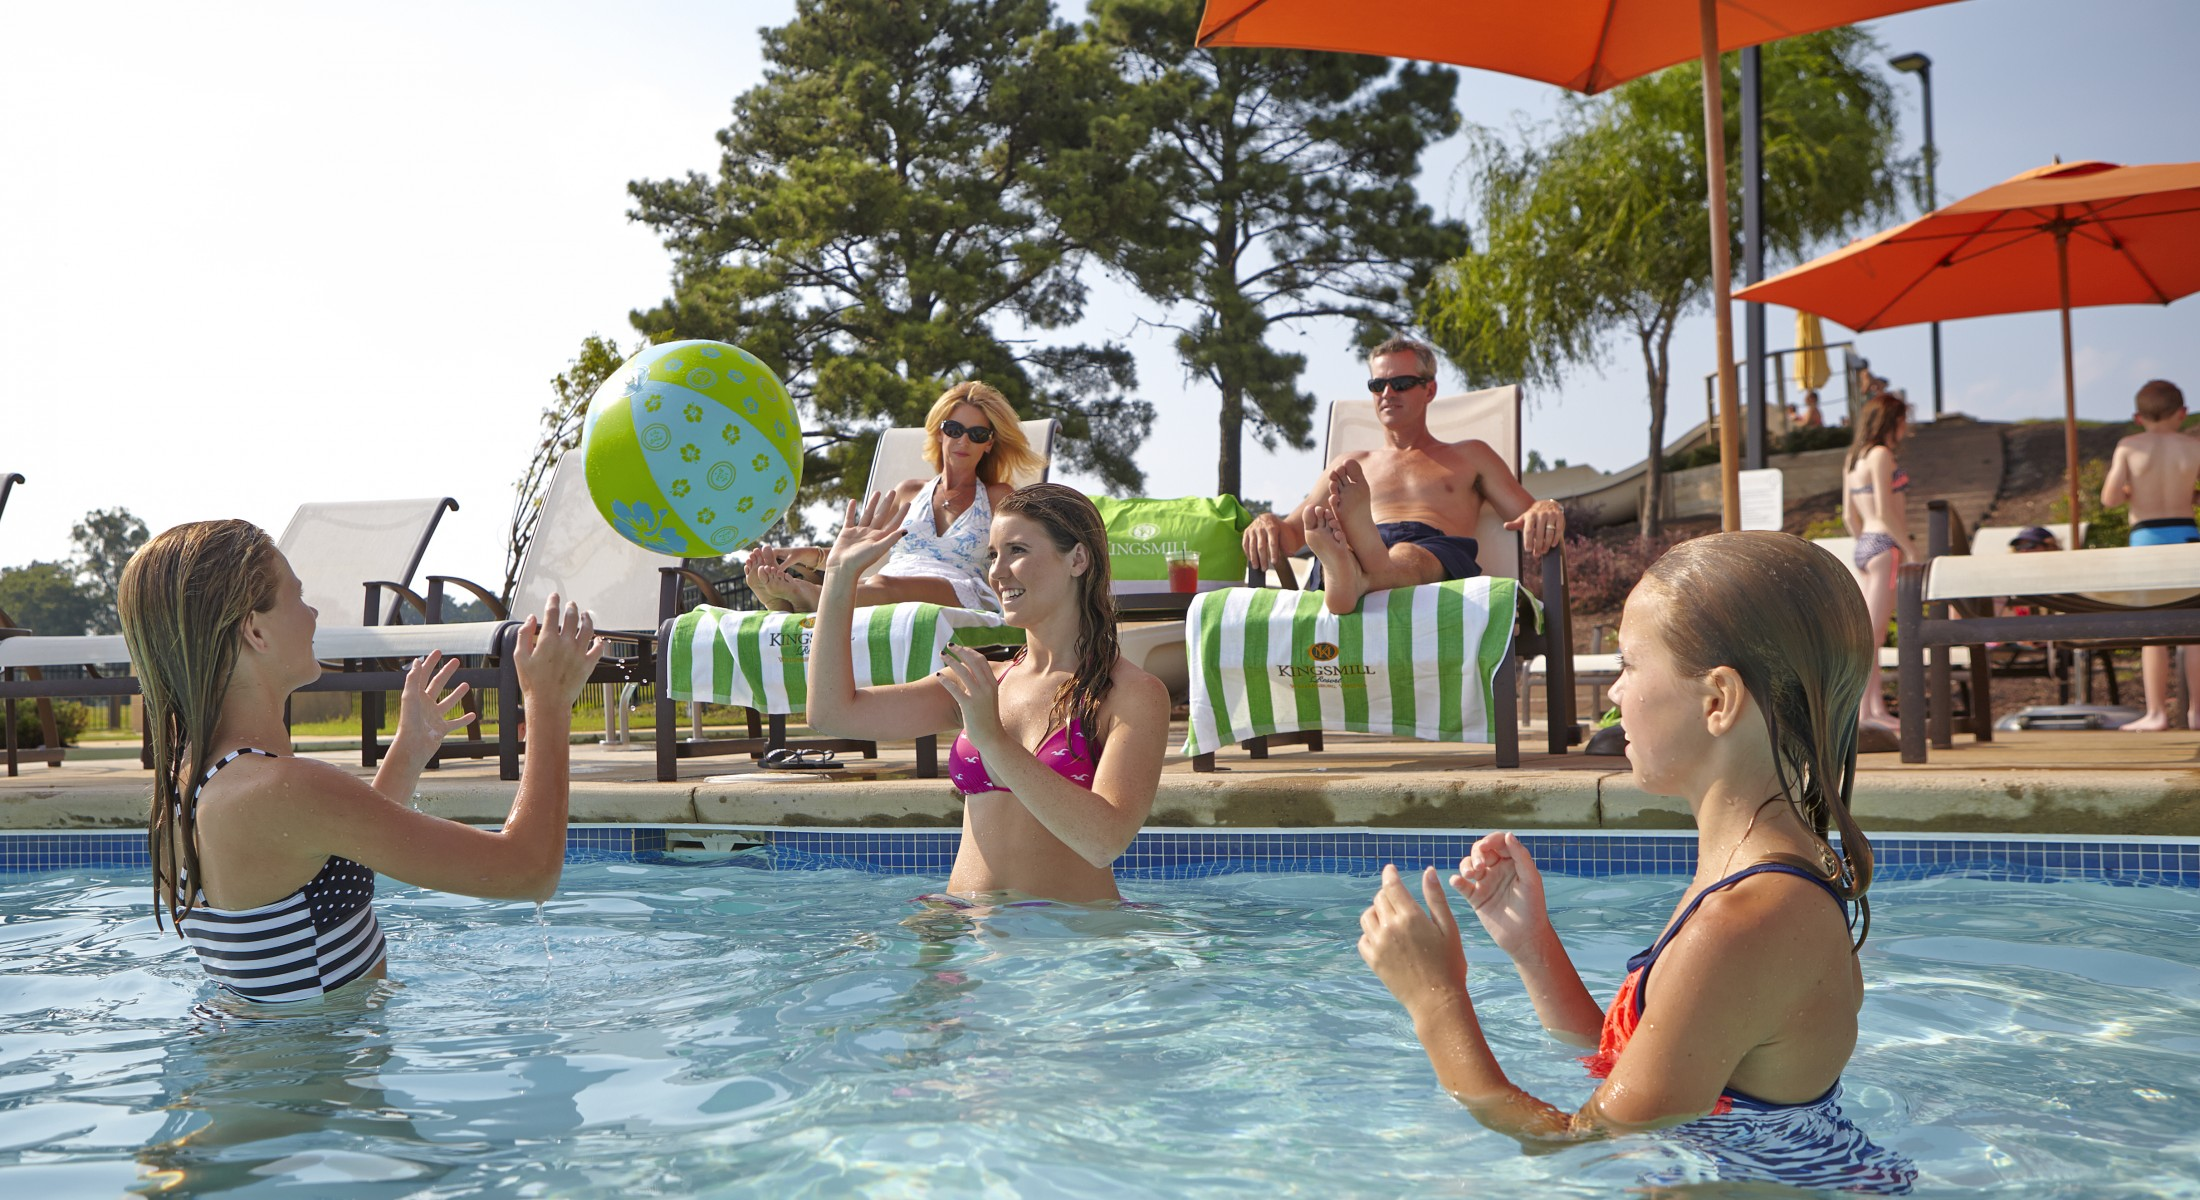 Family at River Pool Playing with Ball 2